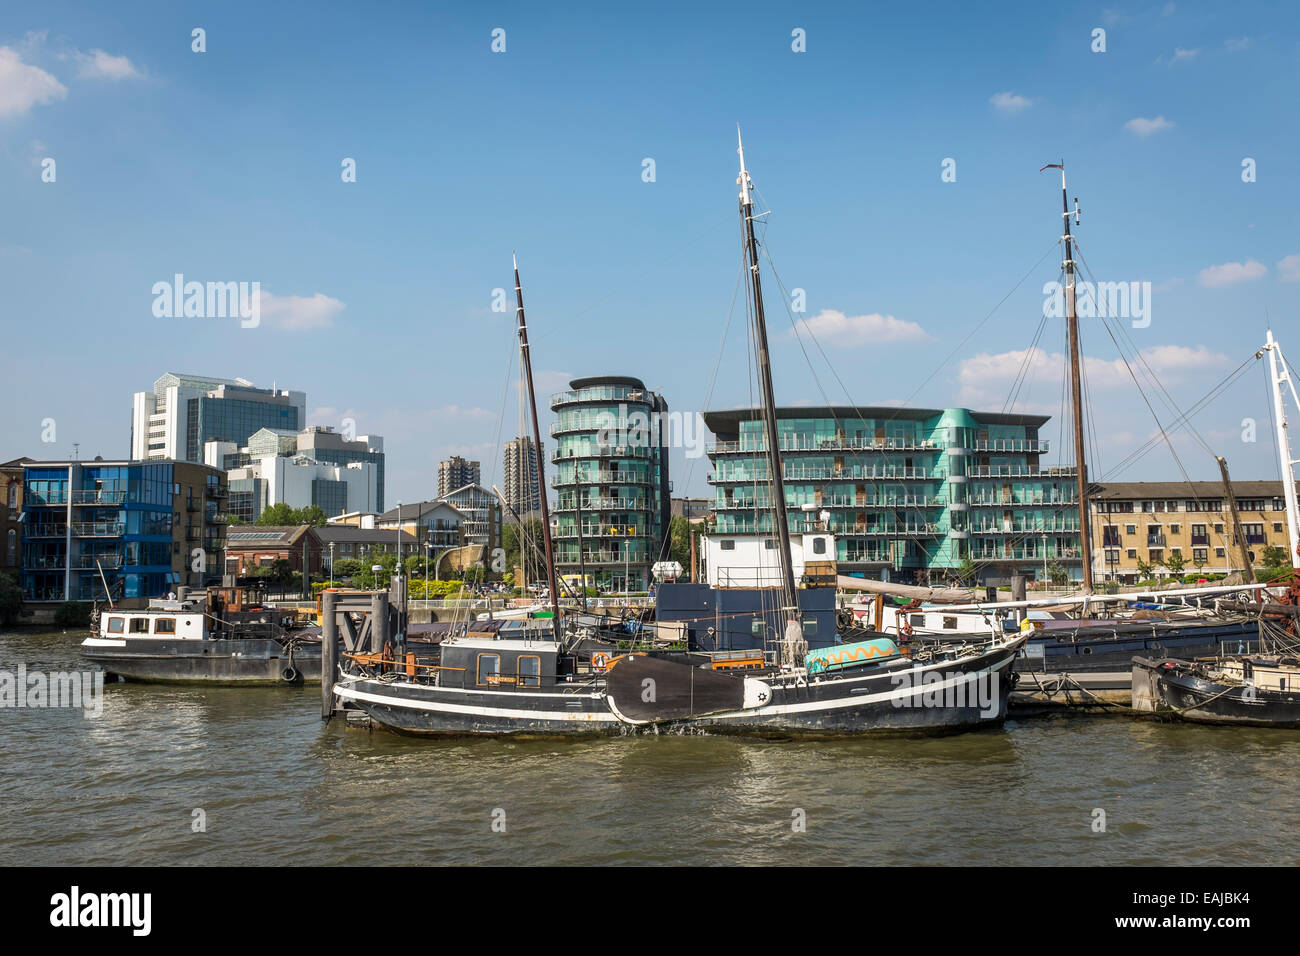 House boats and barges moored at Wapping on the north bank of the River Thames with modern apartment buildings behind. Stock Photo